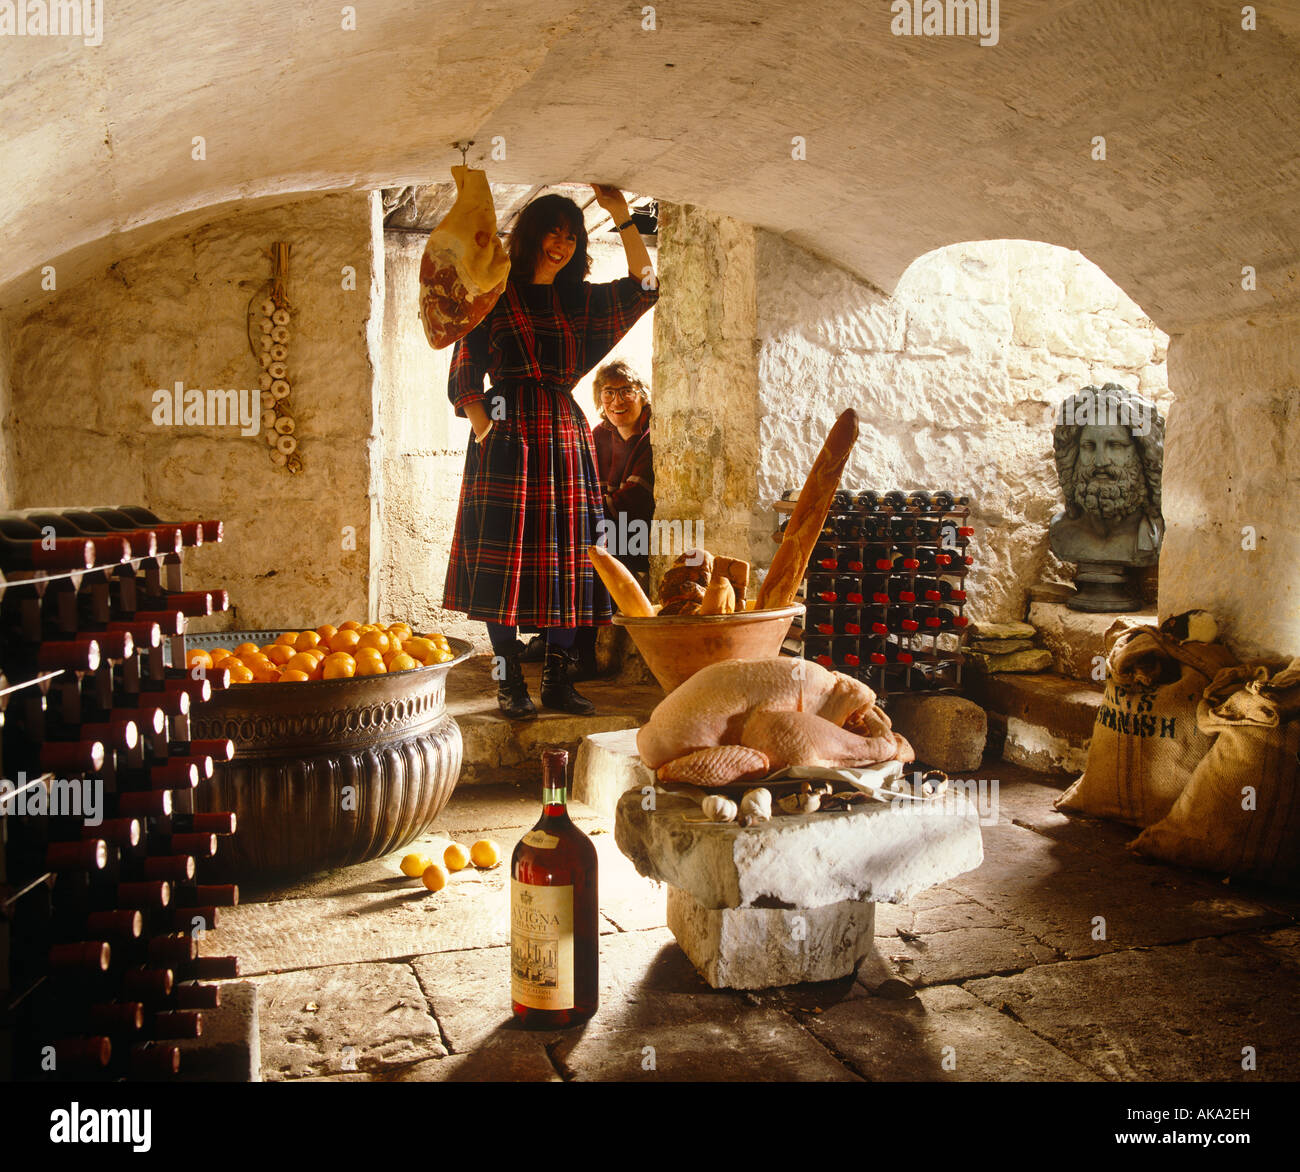 Larder/Cellar with Owners Stock Photo